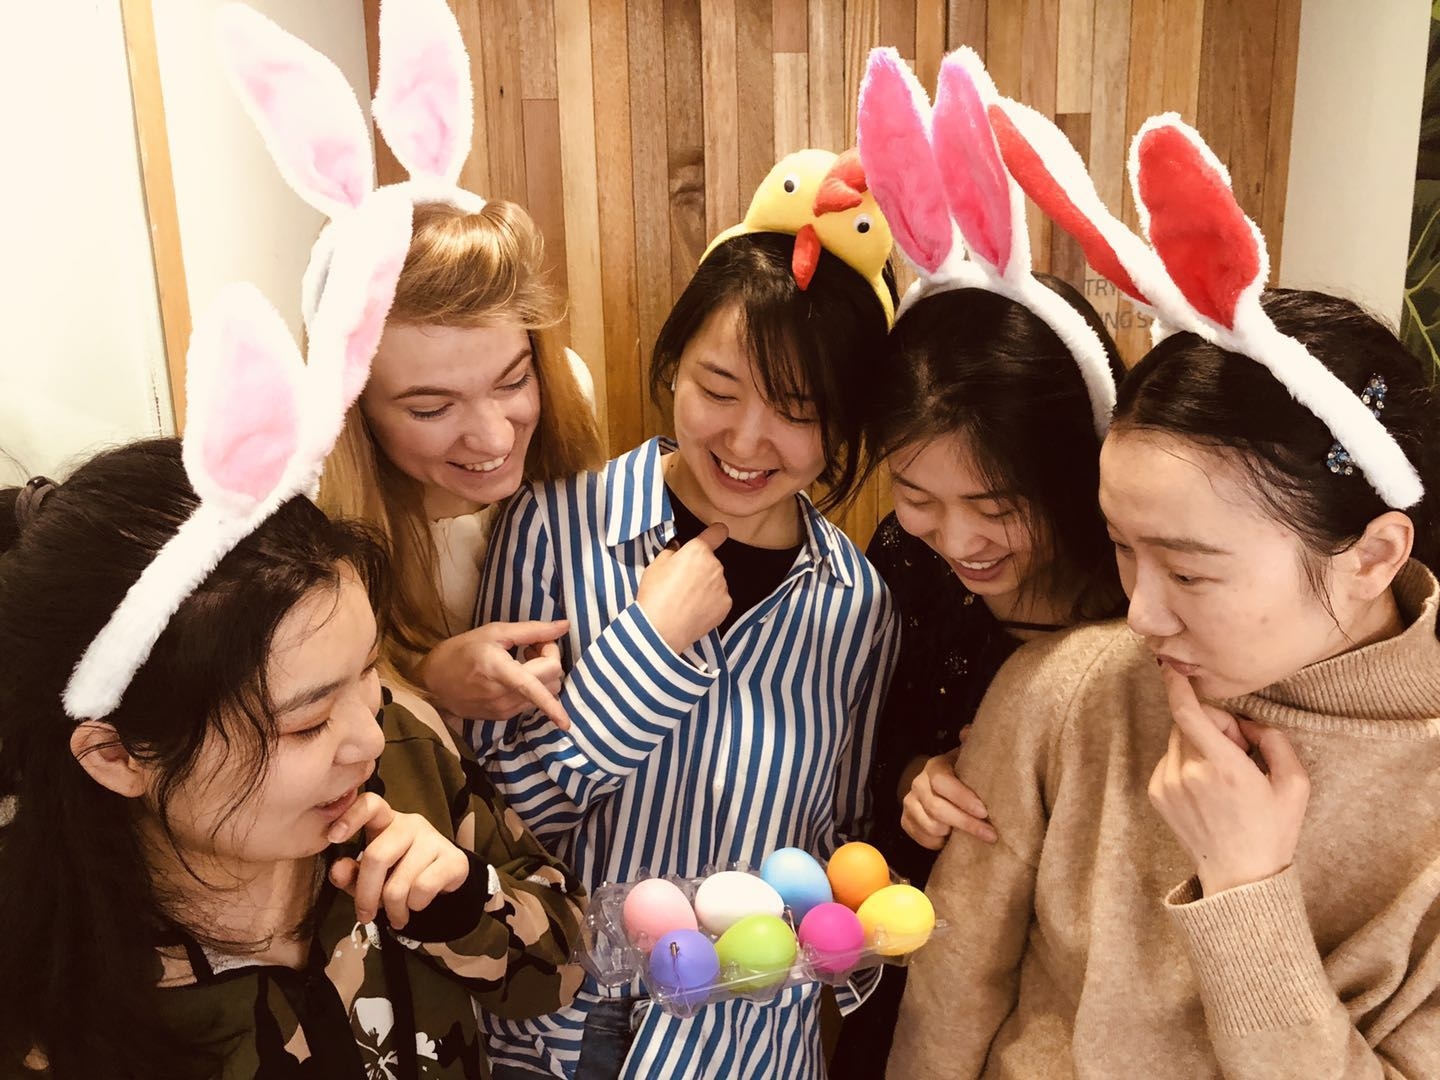 WIN ¥6,000 in Prizes When You Send Us Your Best Easter Pictures